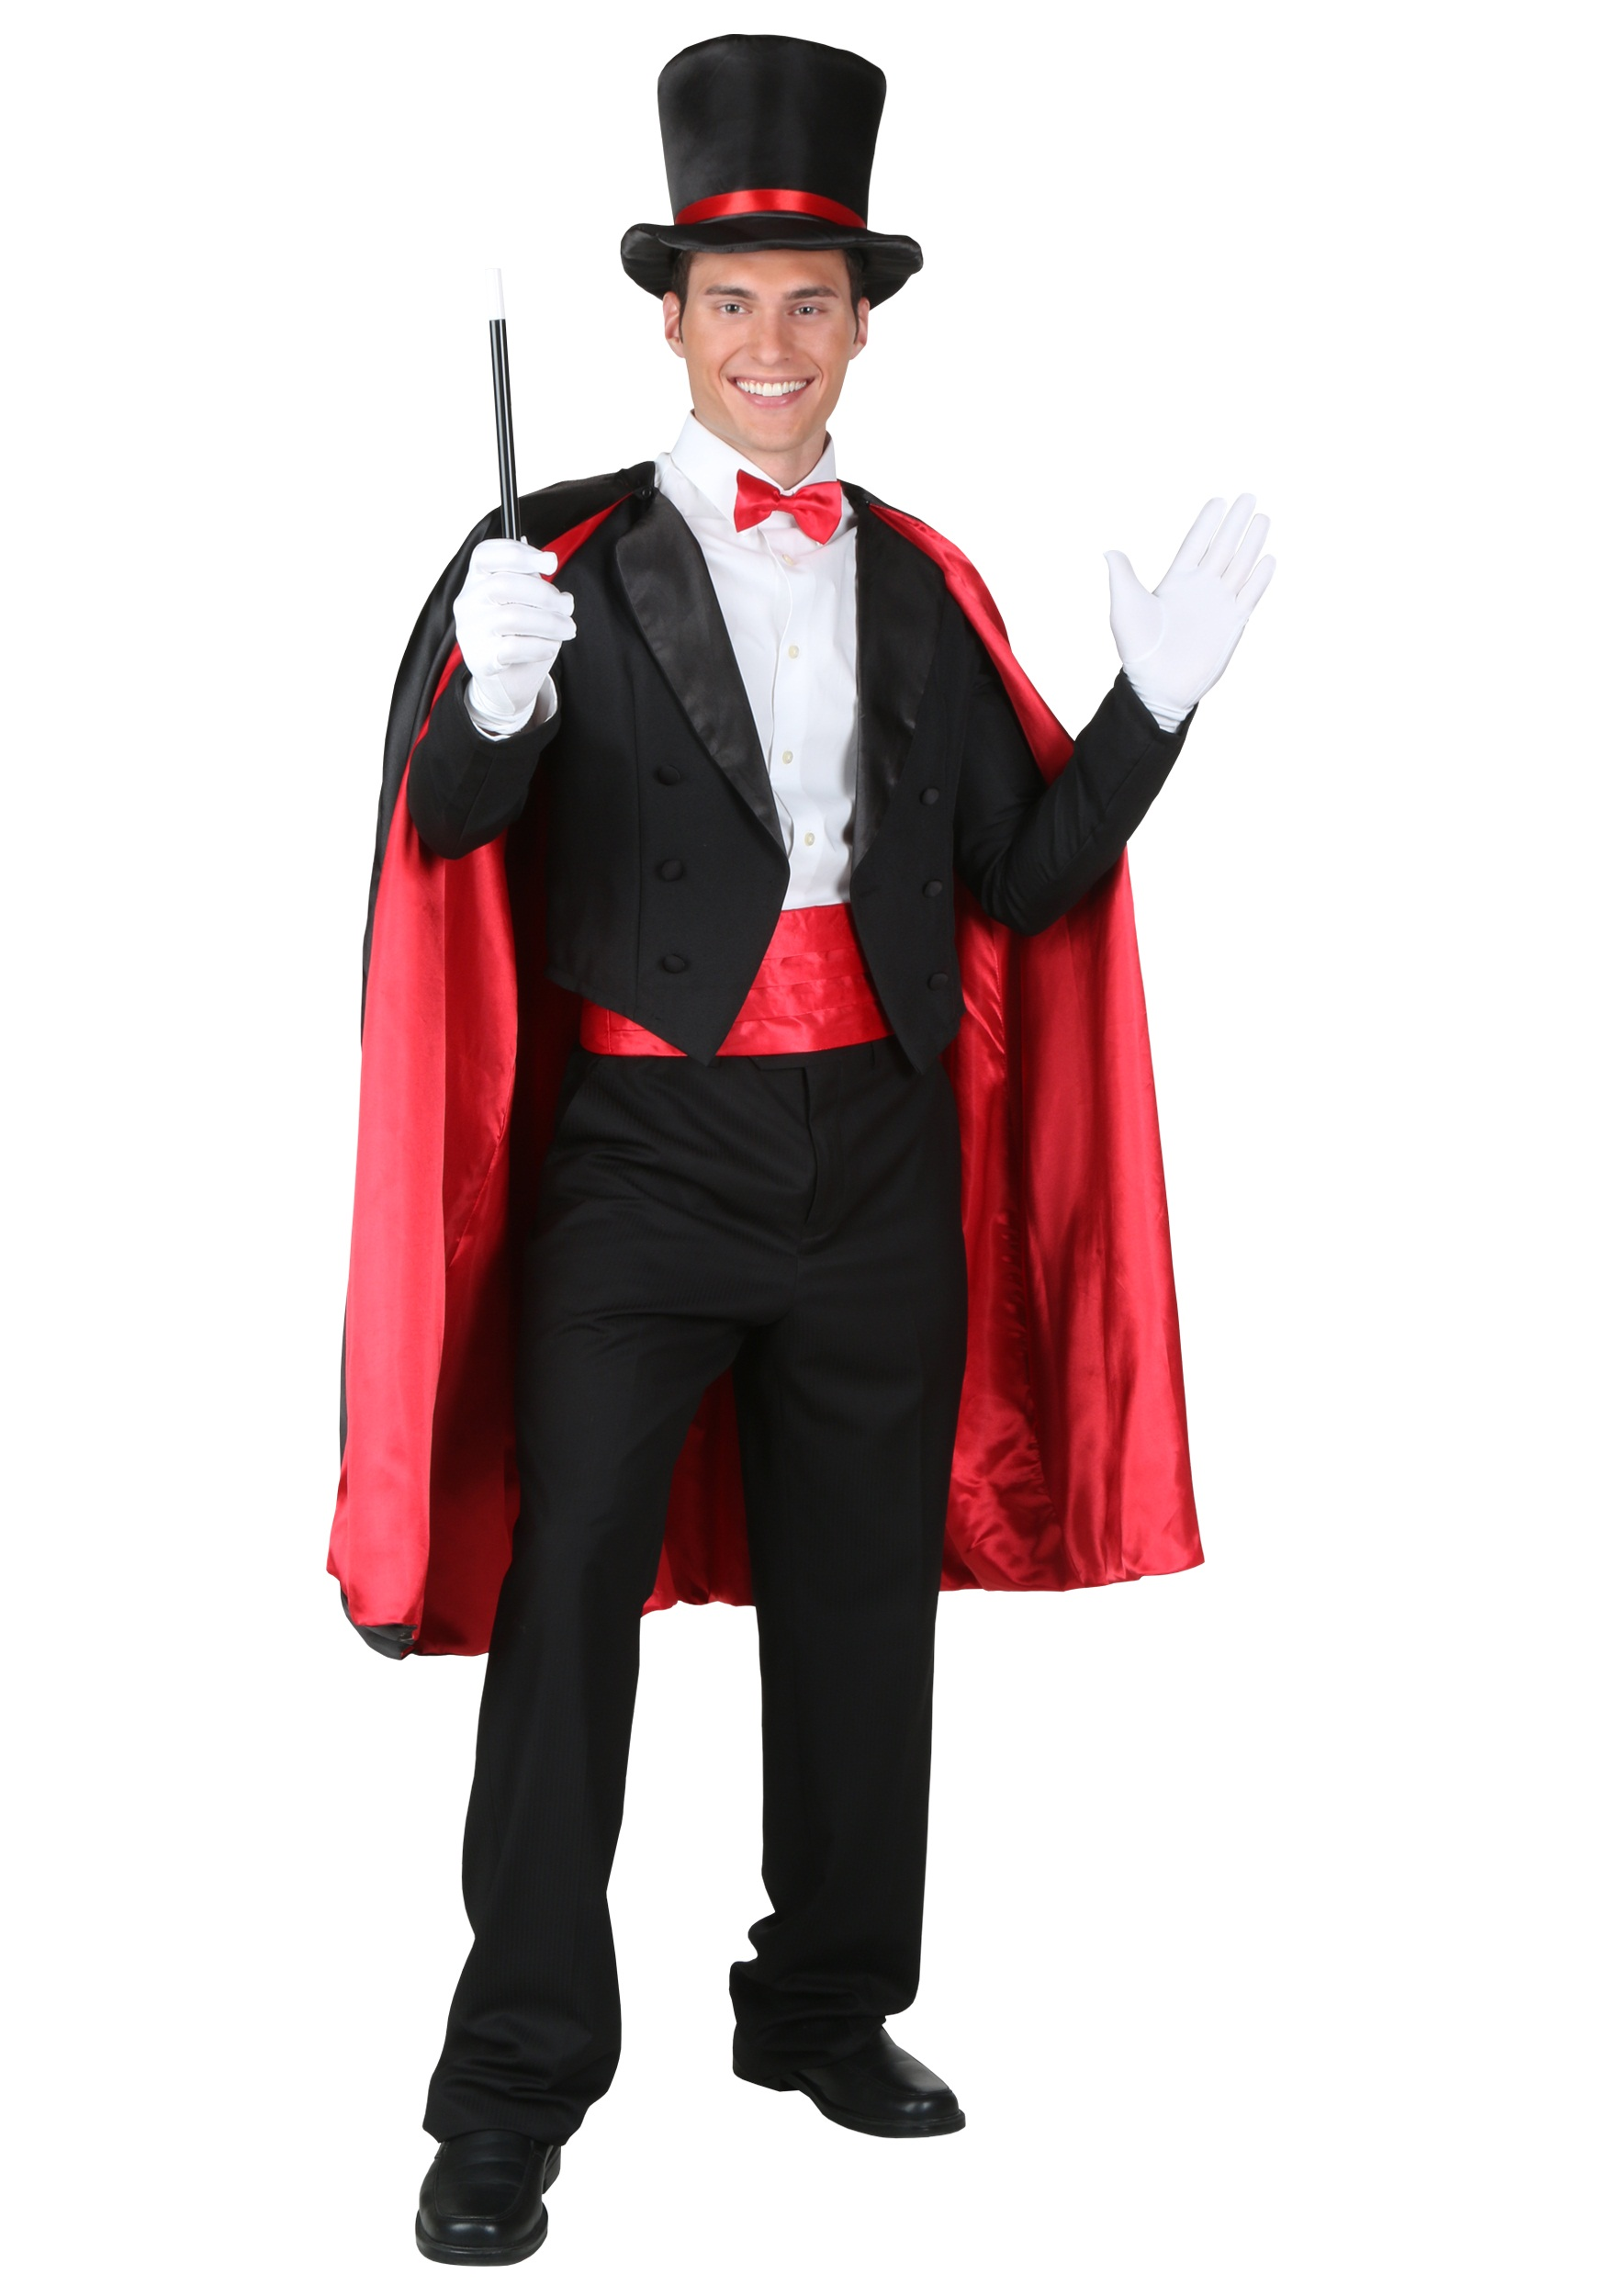 Magician Costumes - Magician Halloween Costumes for Adults and Kids